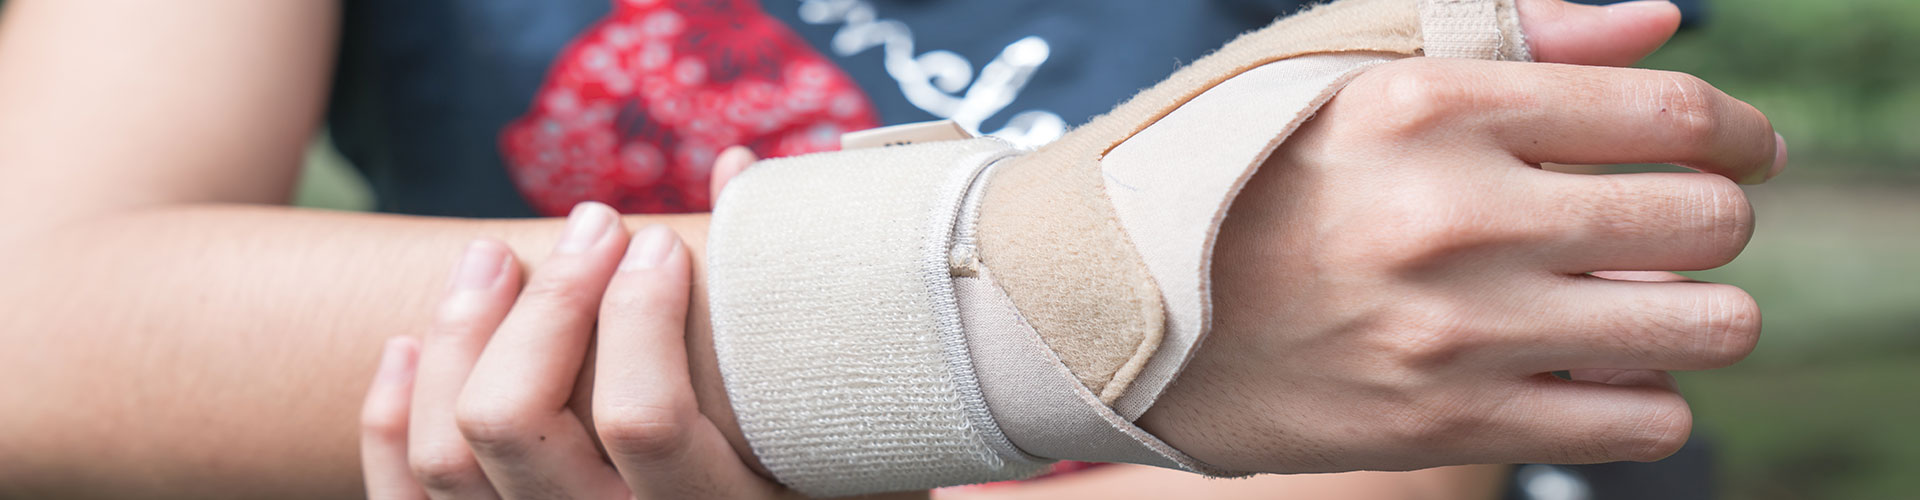 injured woman with wristband compression